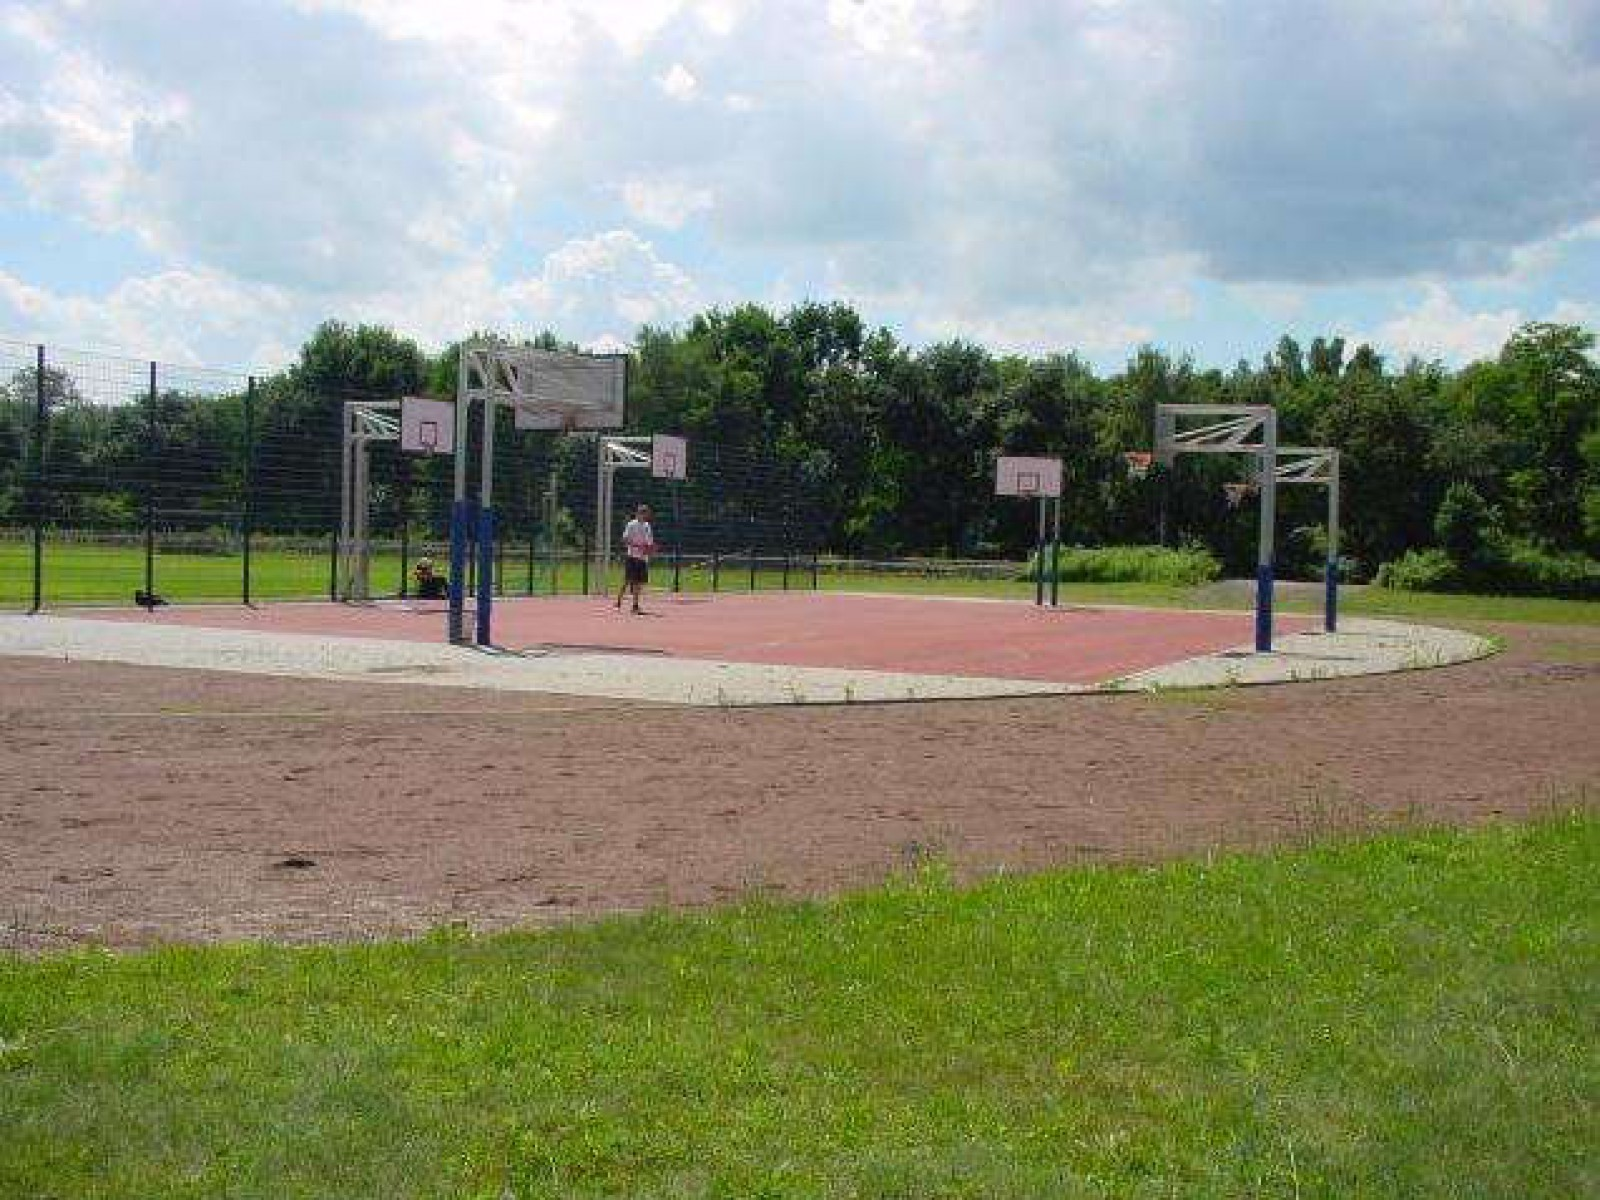 Spielplatz Berlin Marzahn Berlin Basketball Courts In Berlin Courts Of The World